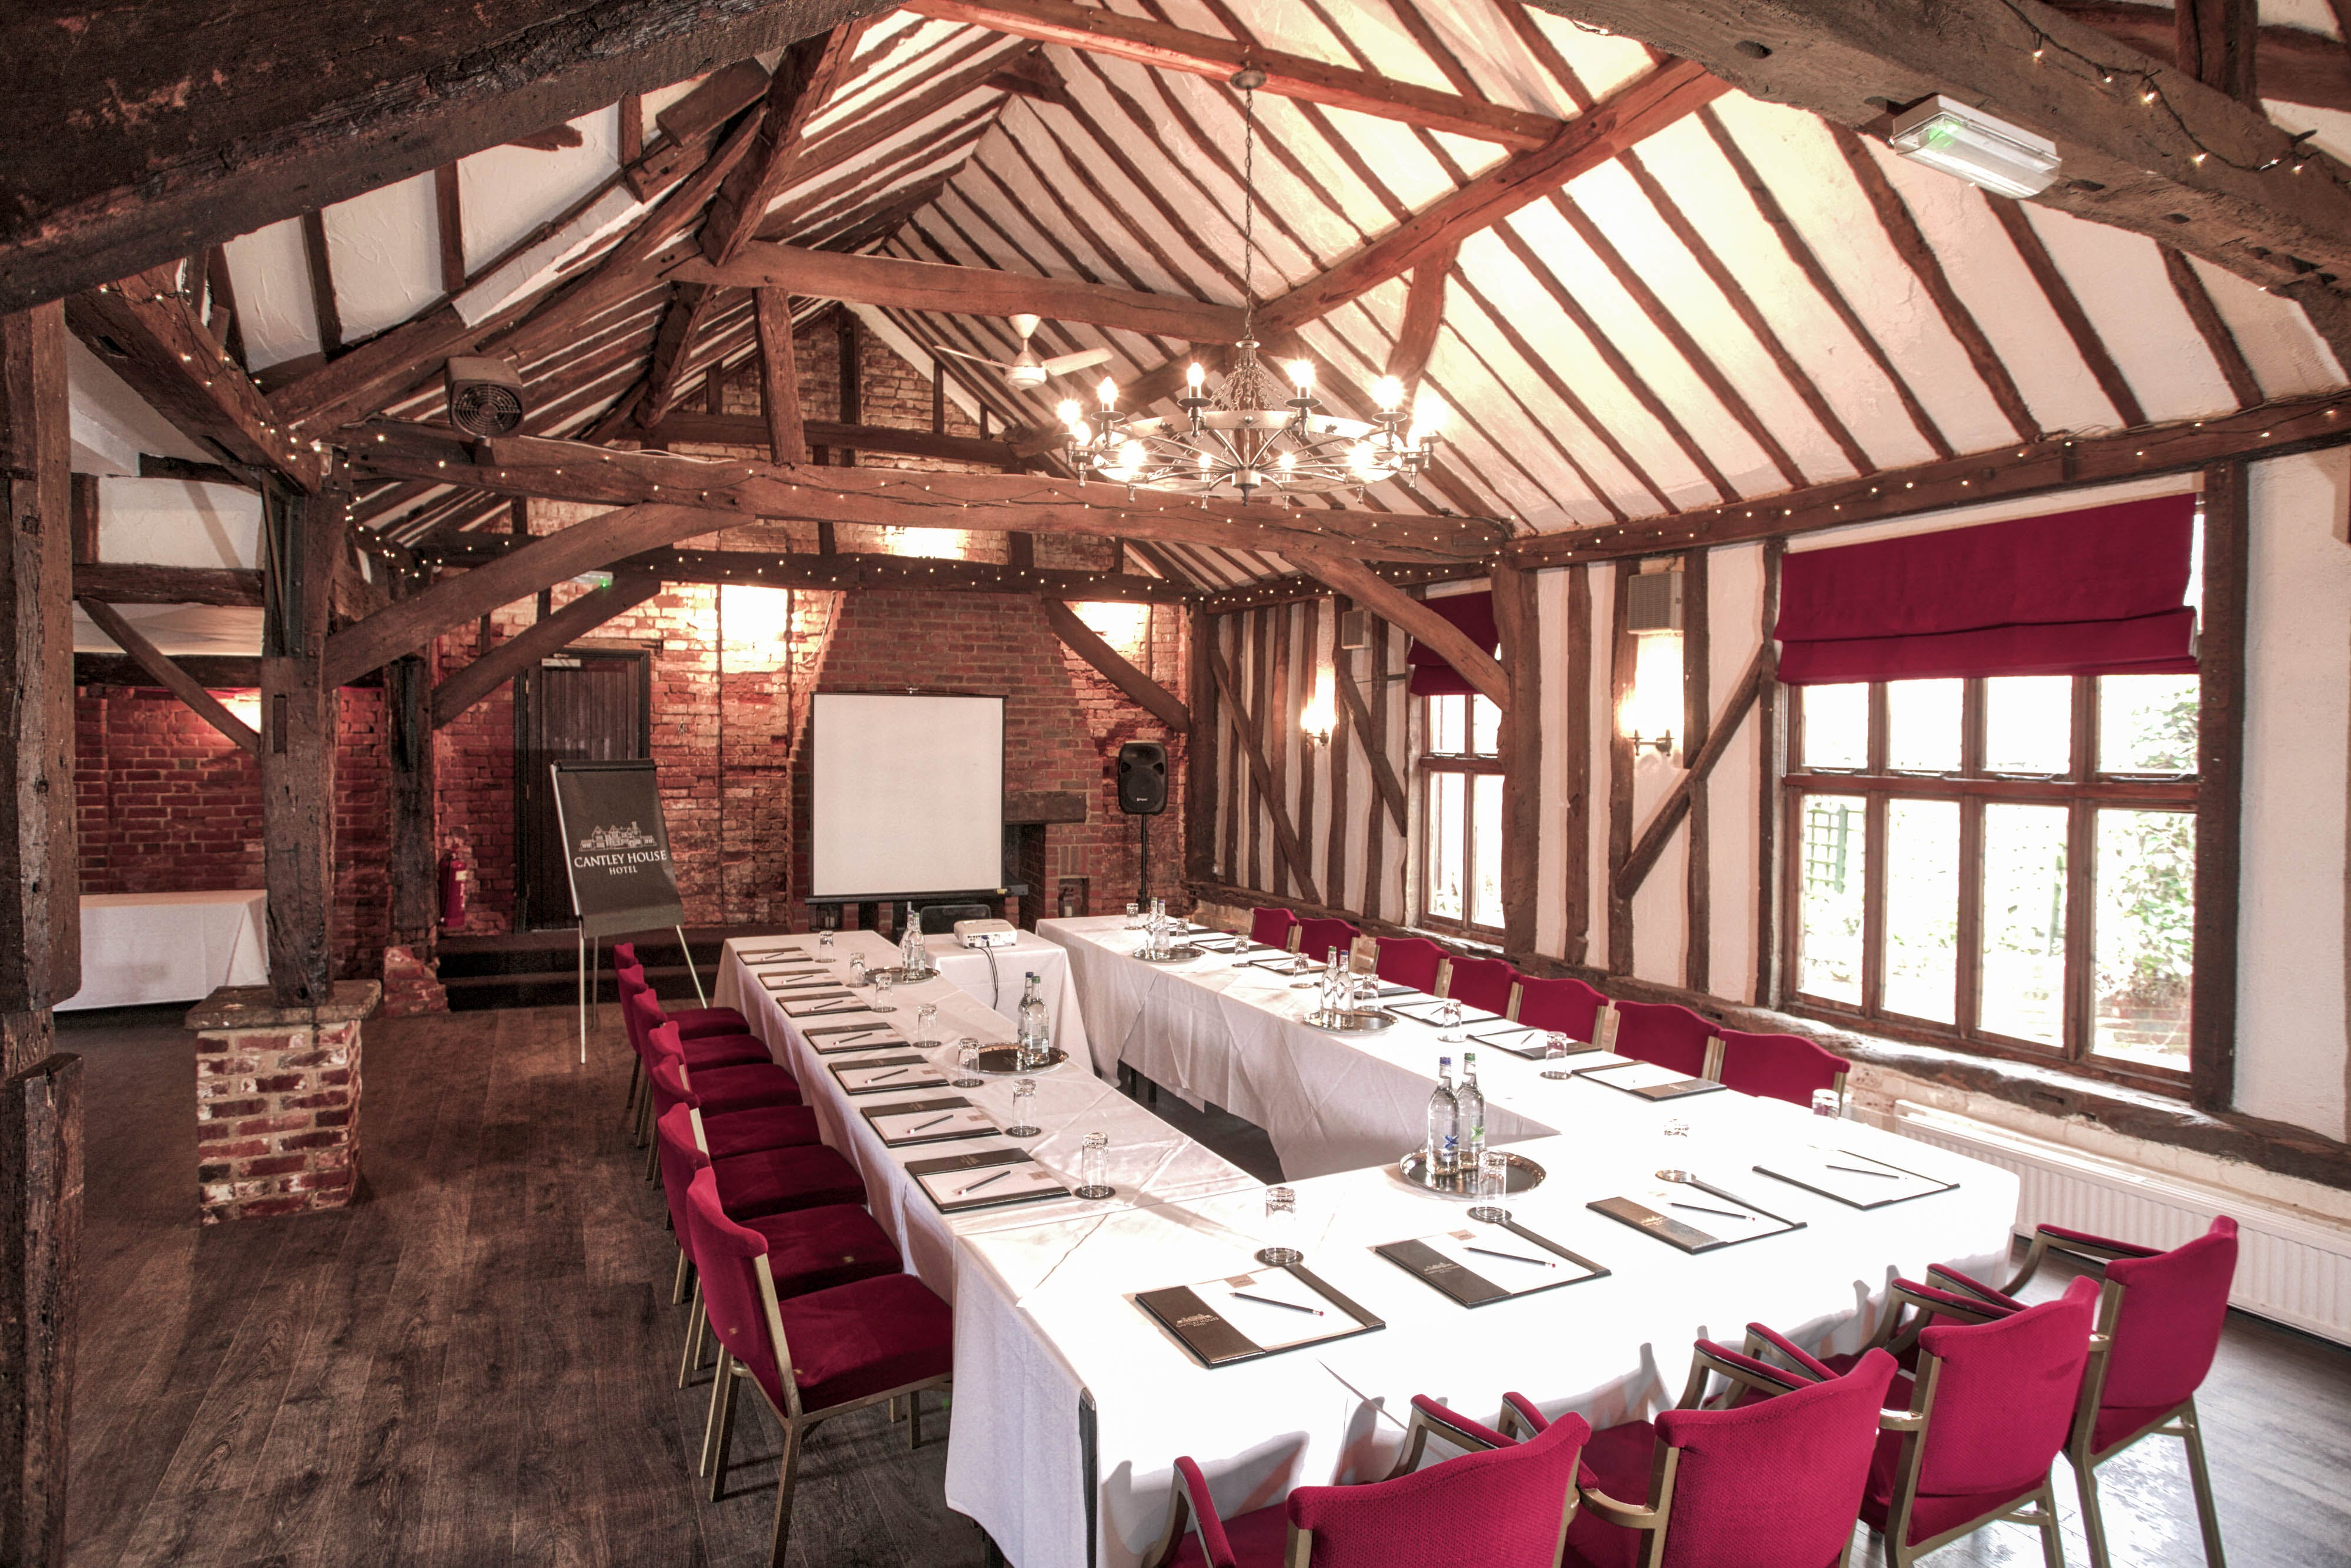 Meeting, The Briar, Cantley House, stately home